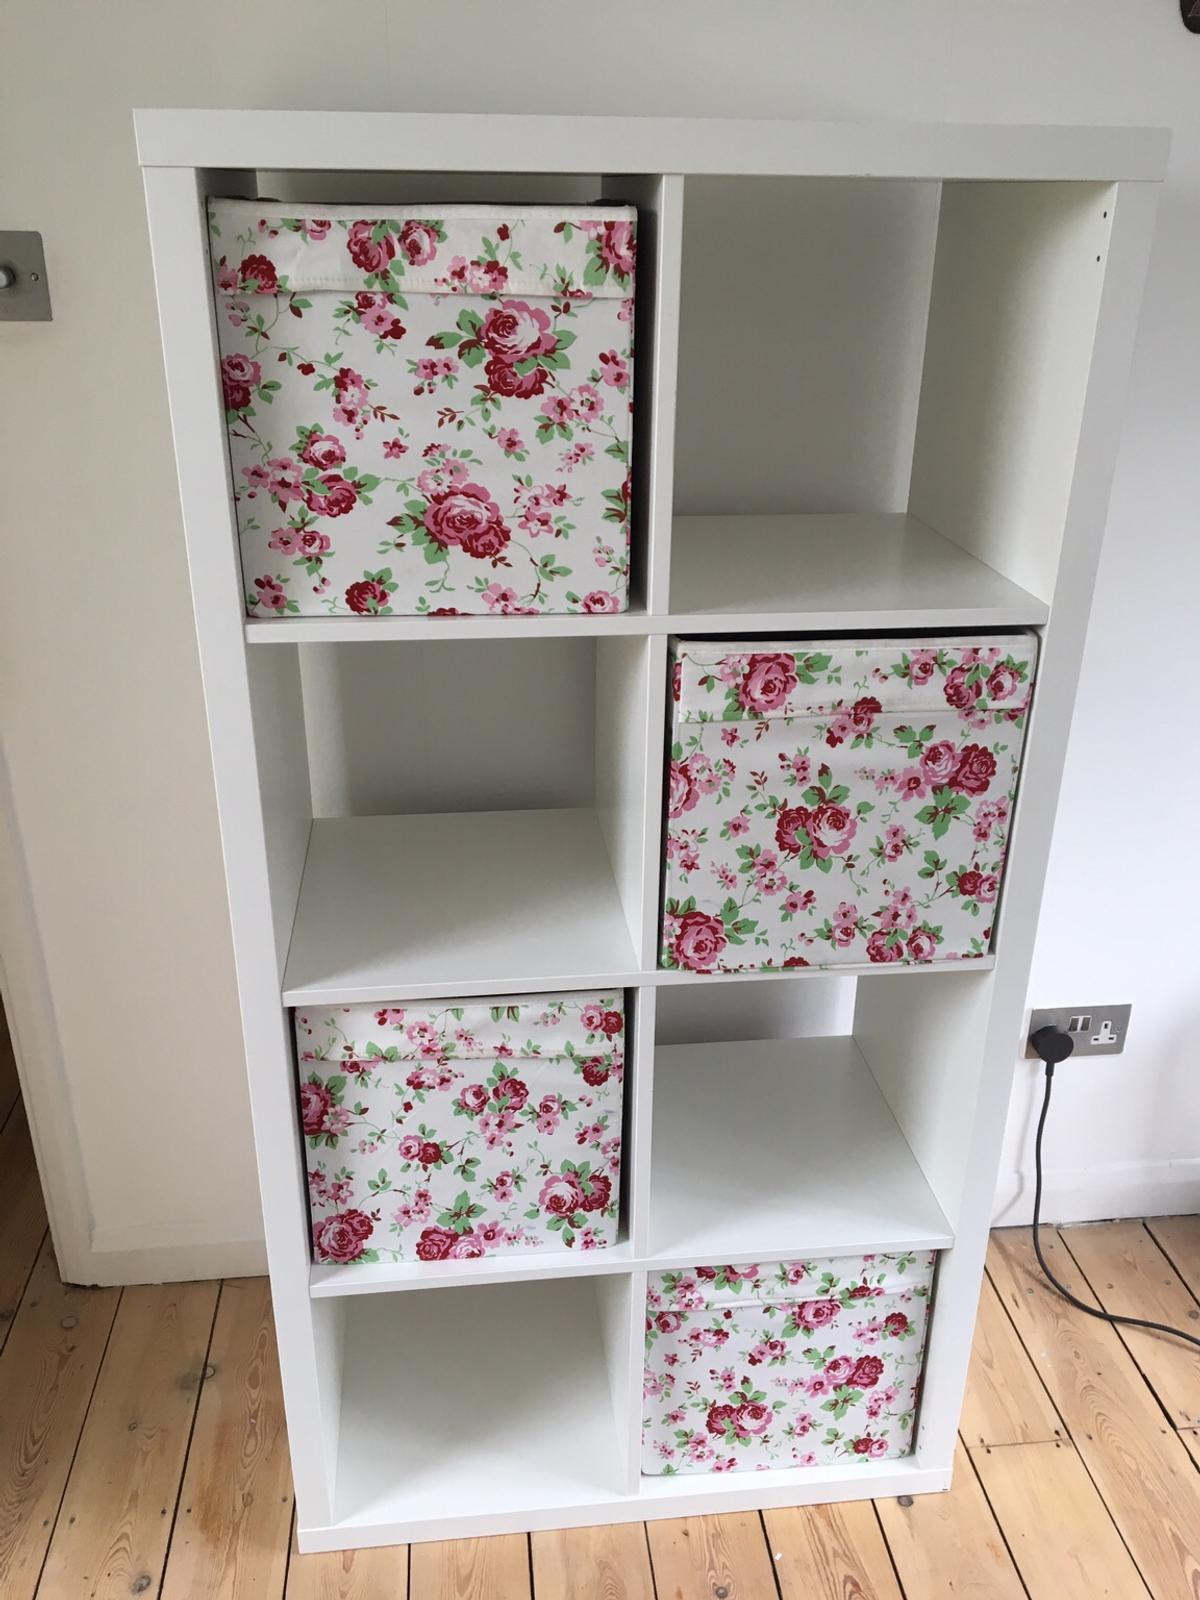 Ikea shelving unit with 4 storage boxes in N10 London for £30 00 for